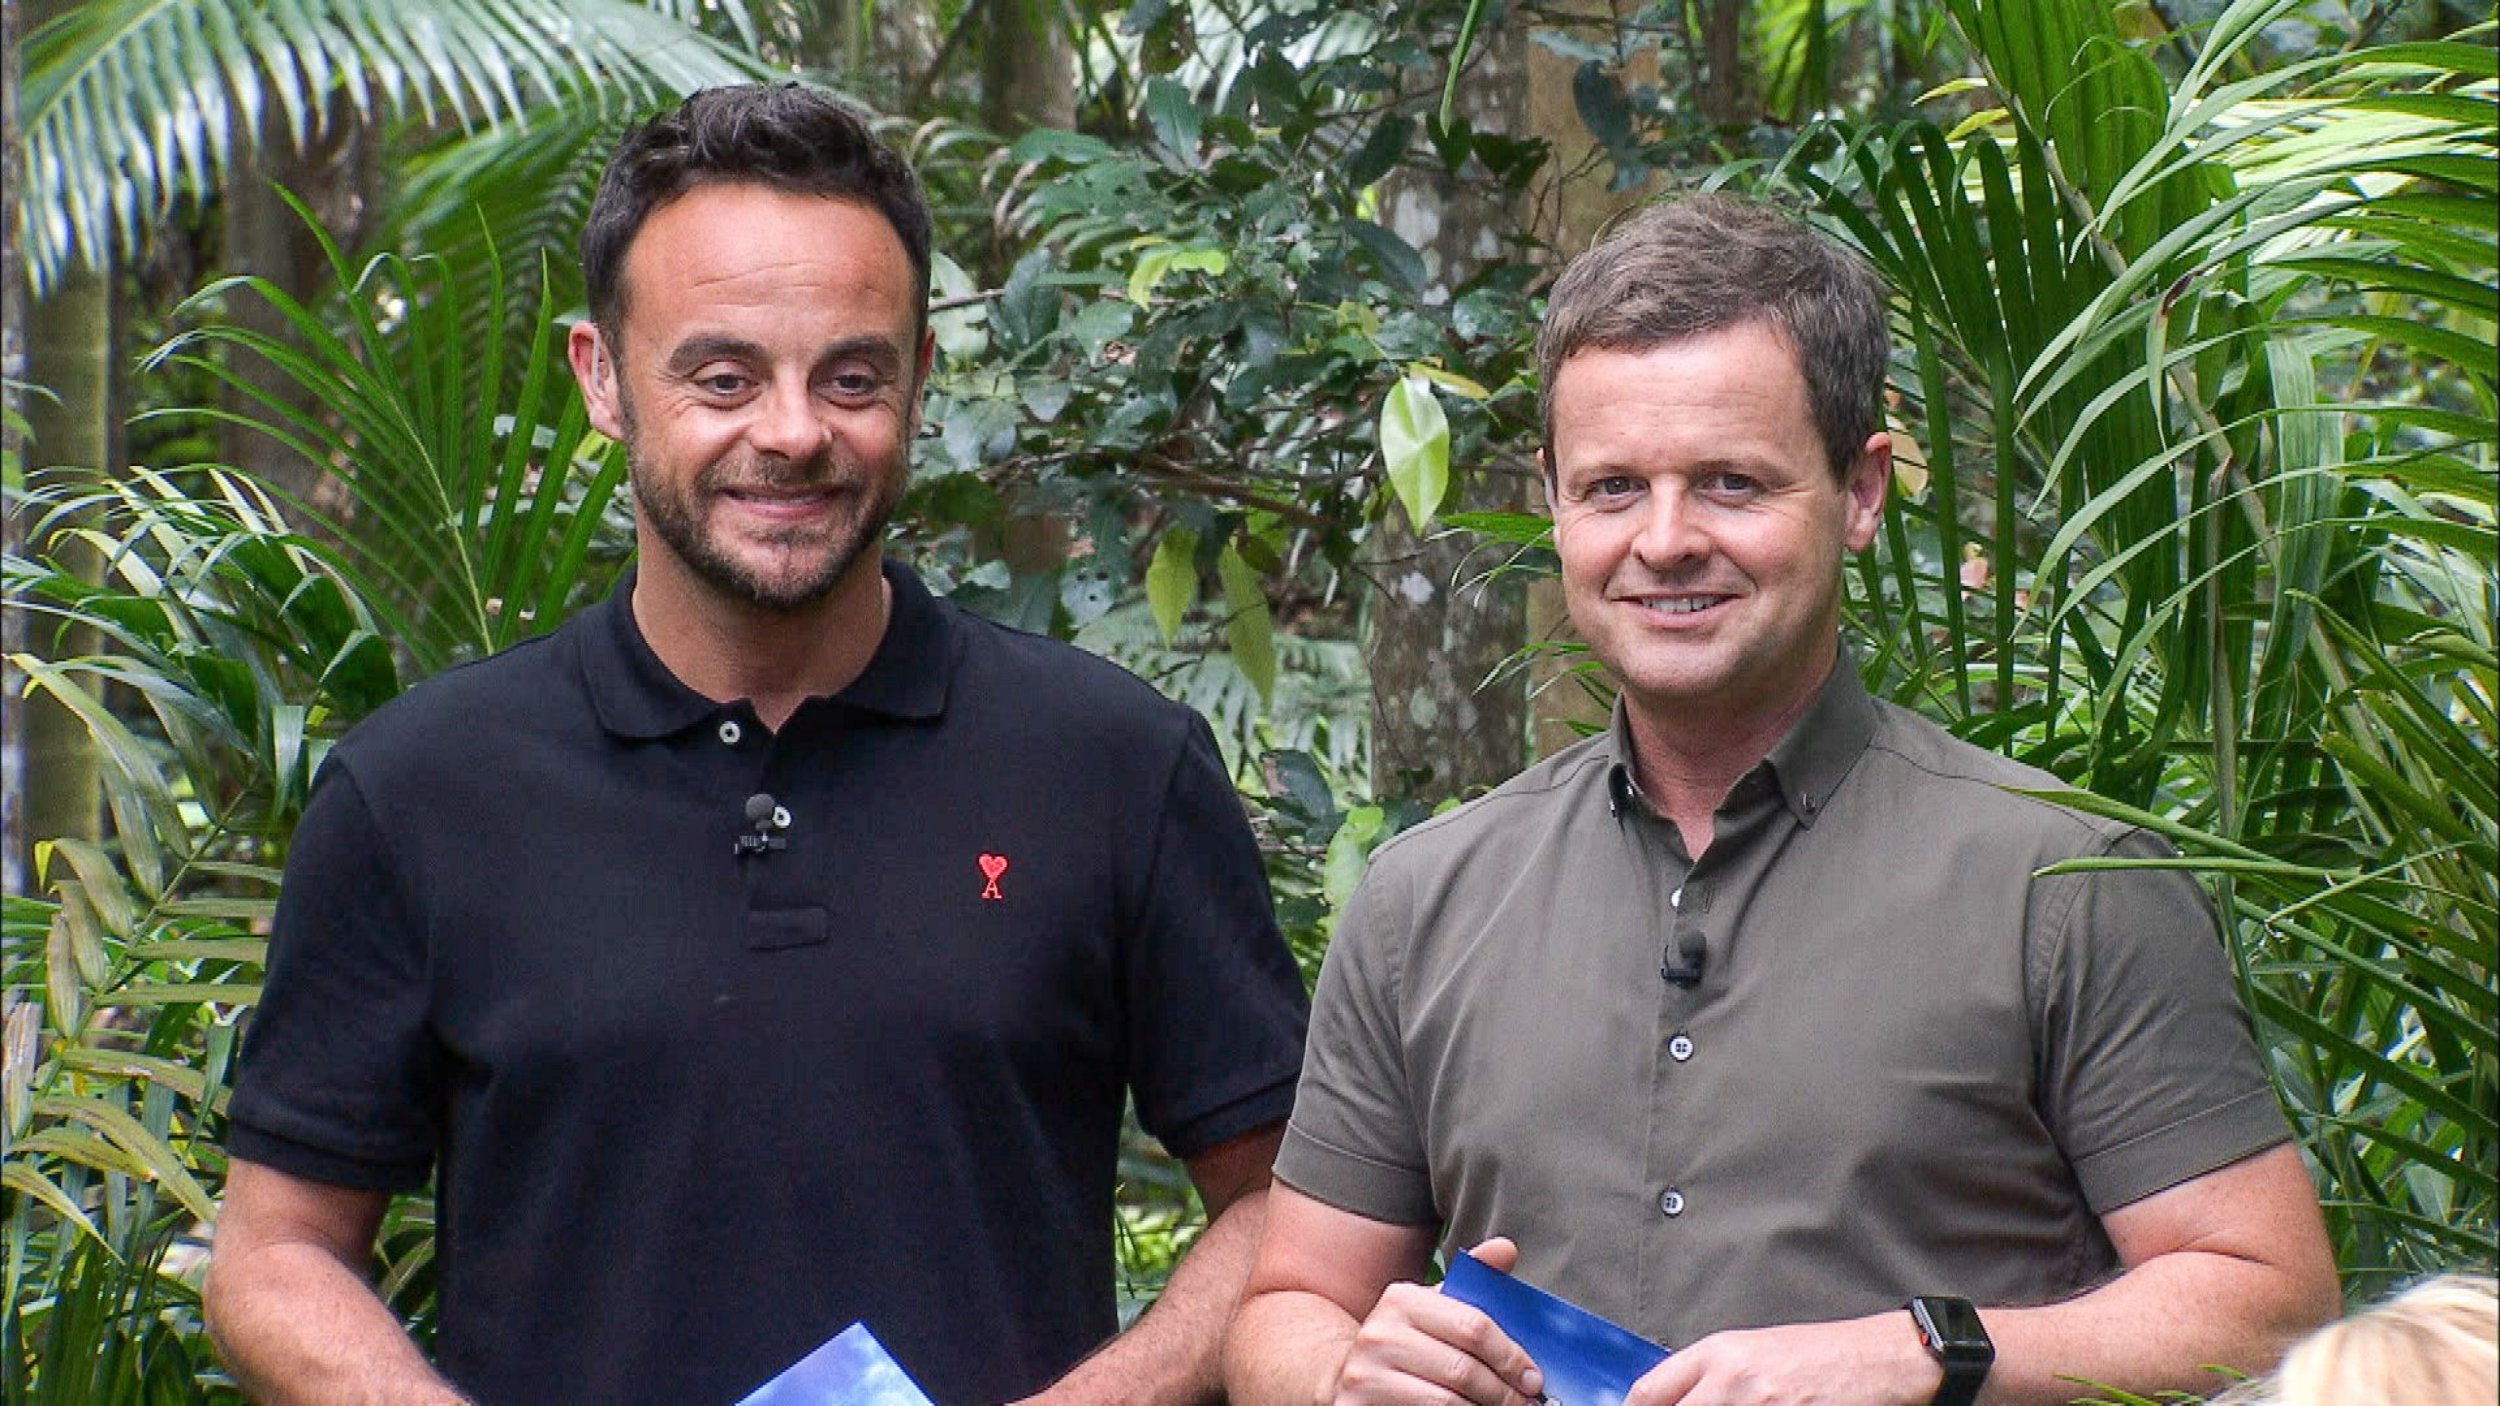 When is Ant McPartlin returning to TV and will he present I'm A Celeb 2019?